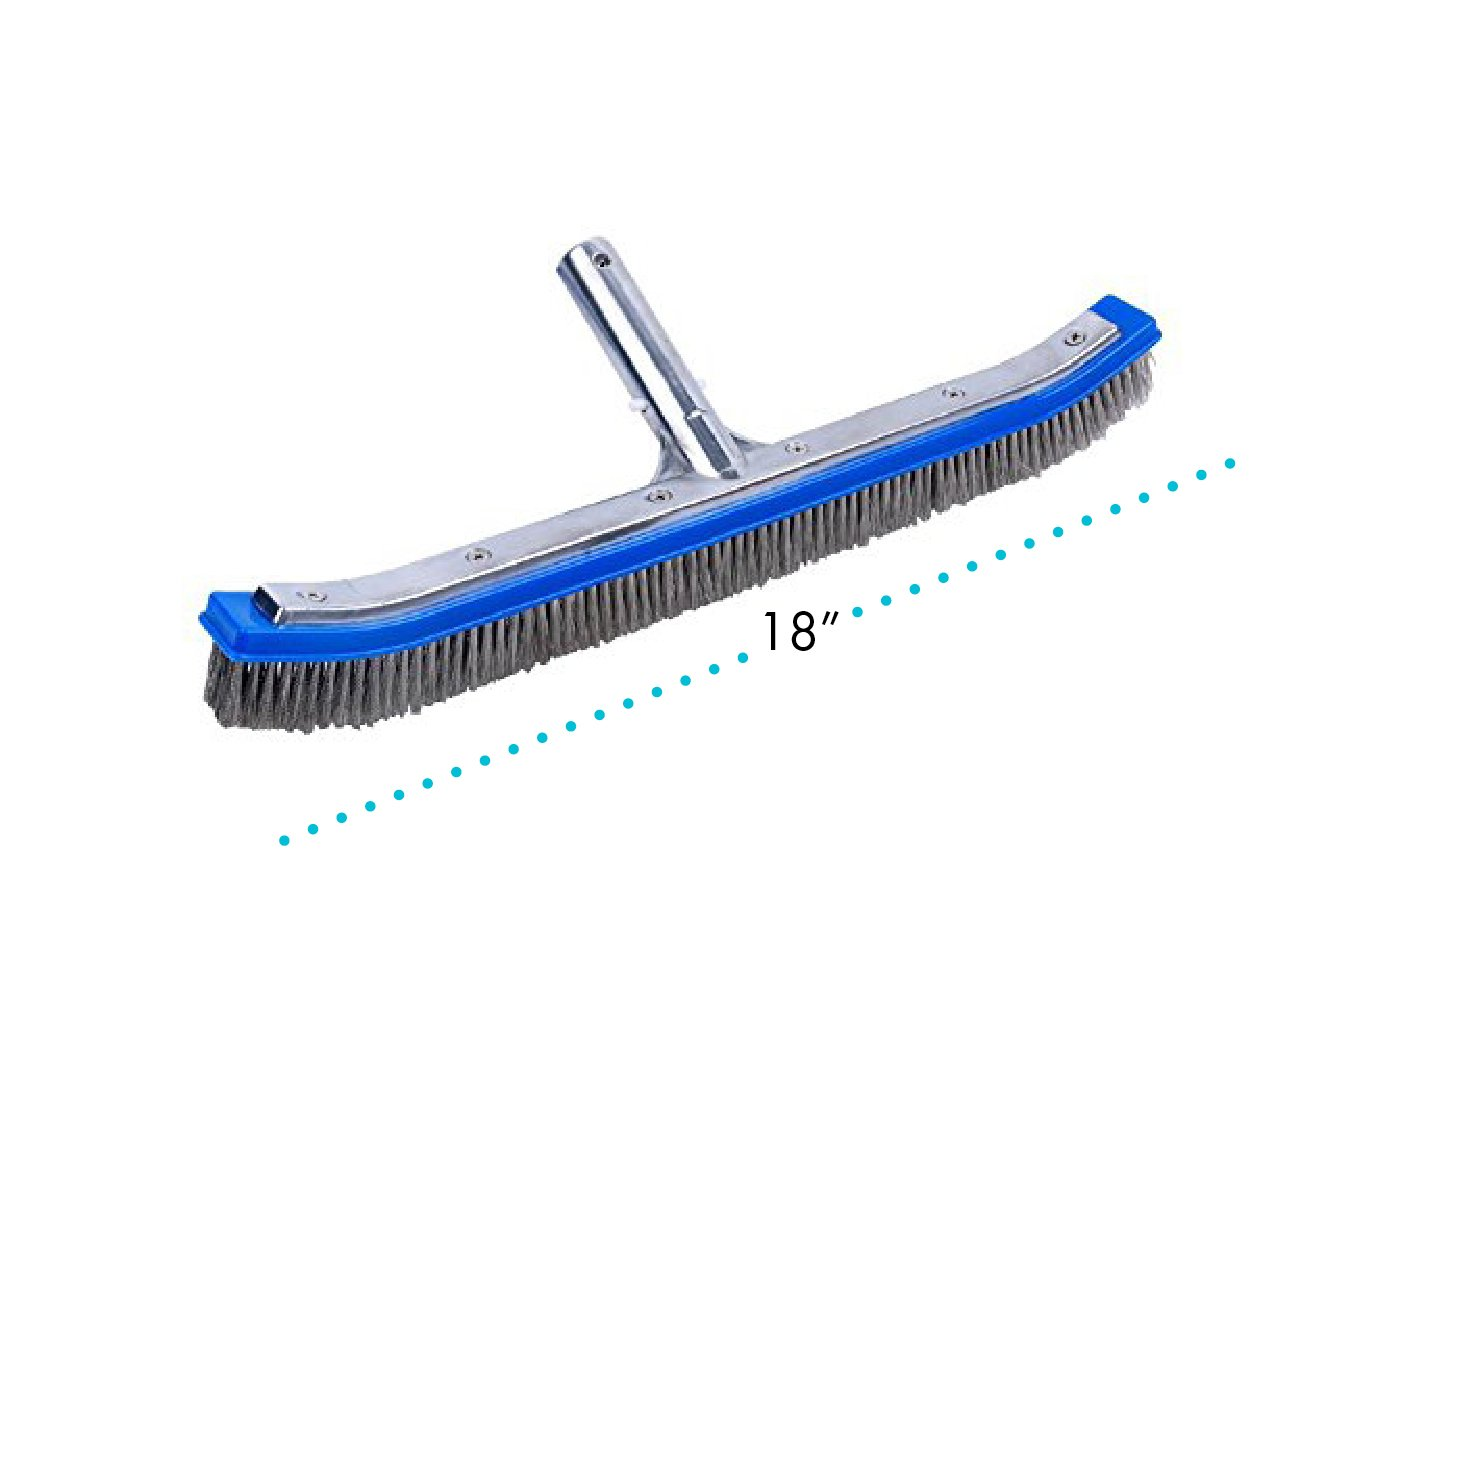 Milliard Pool Brush, 18'' Extra-Wide, Heavy Duty Wire, Algae Cleaner Brush Designed for Concrete and Gunite Pools for Extremely Tough Stain Removal